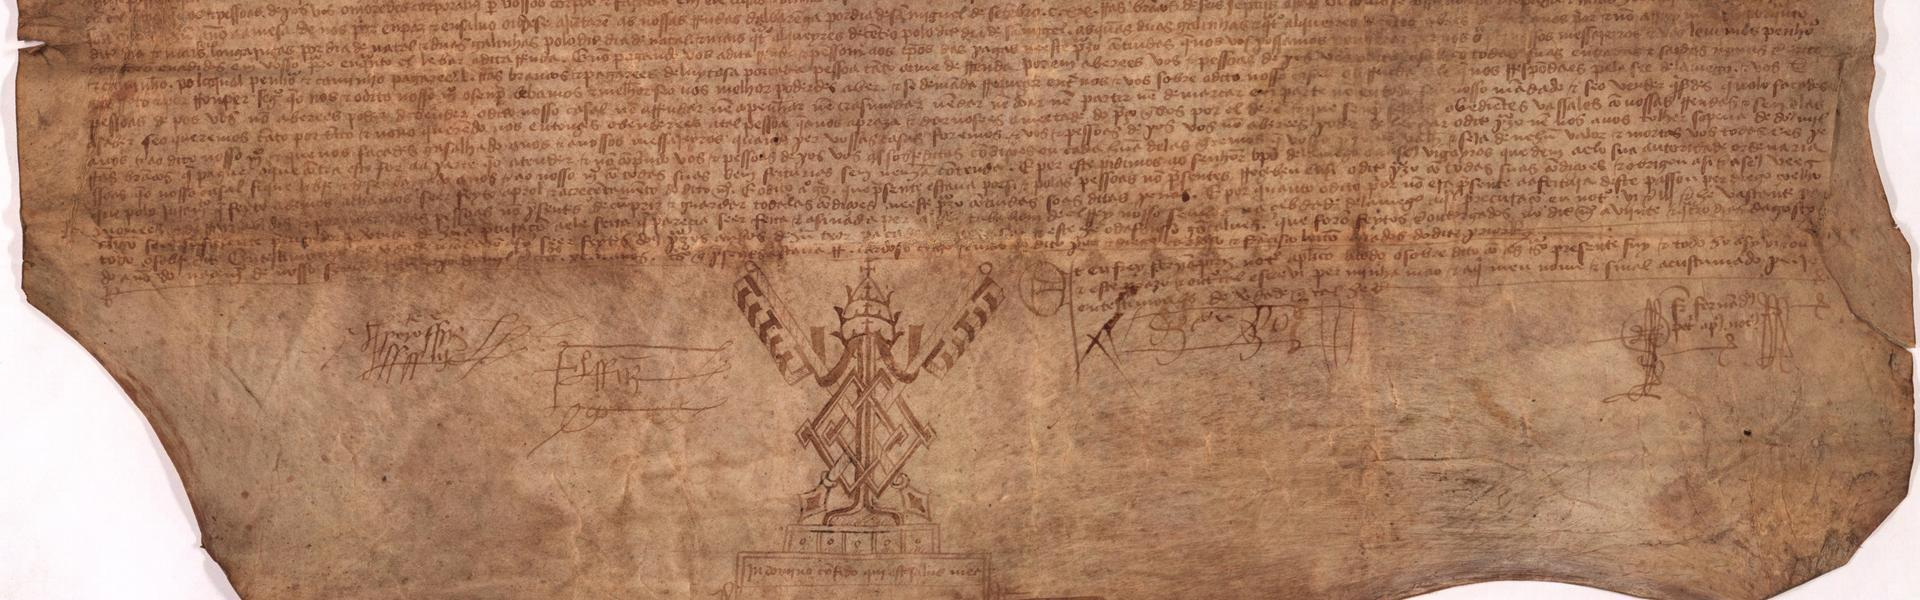 Document of the month - August